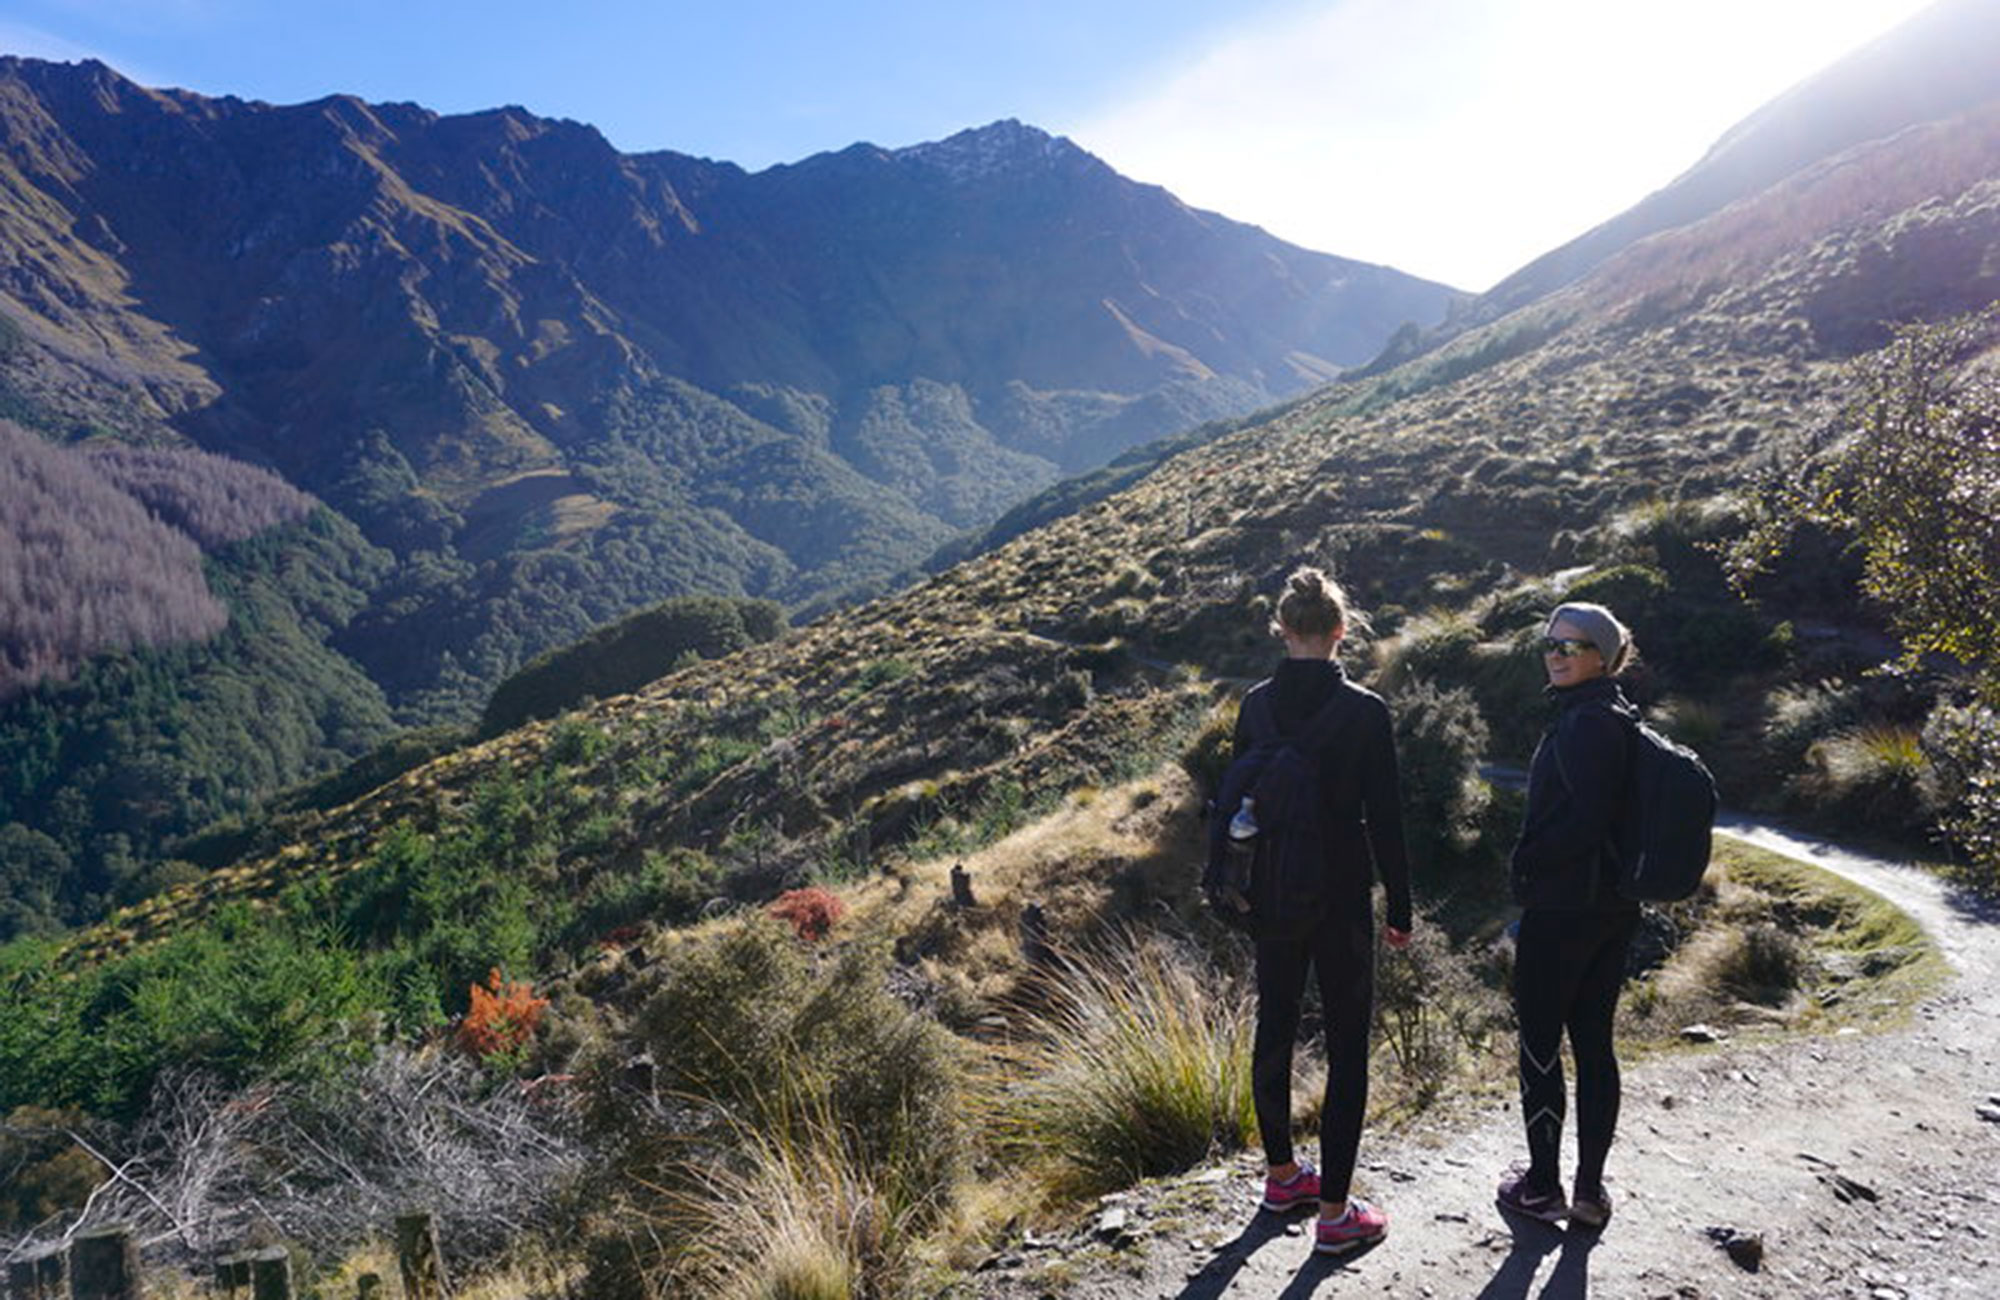 Celine trekking in New Zealand